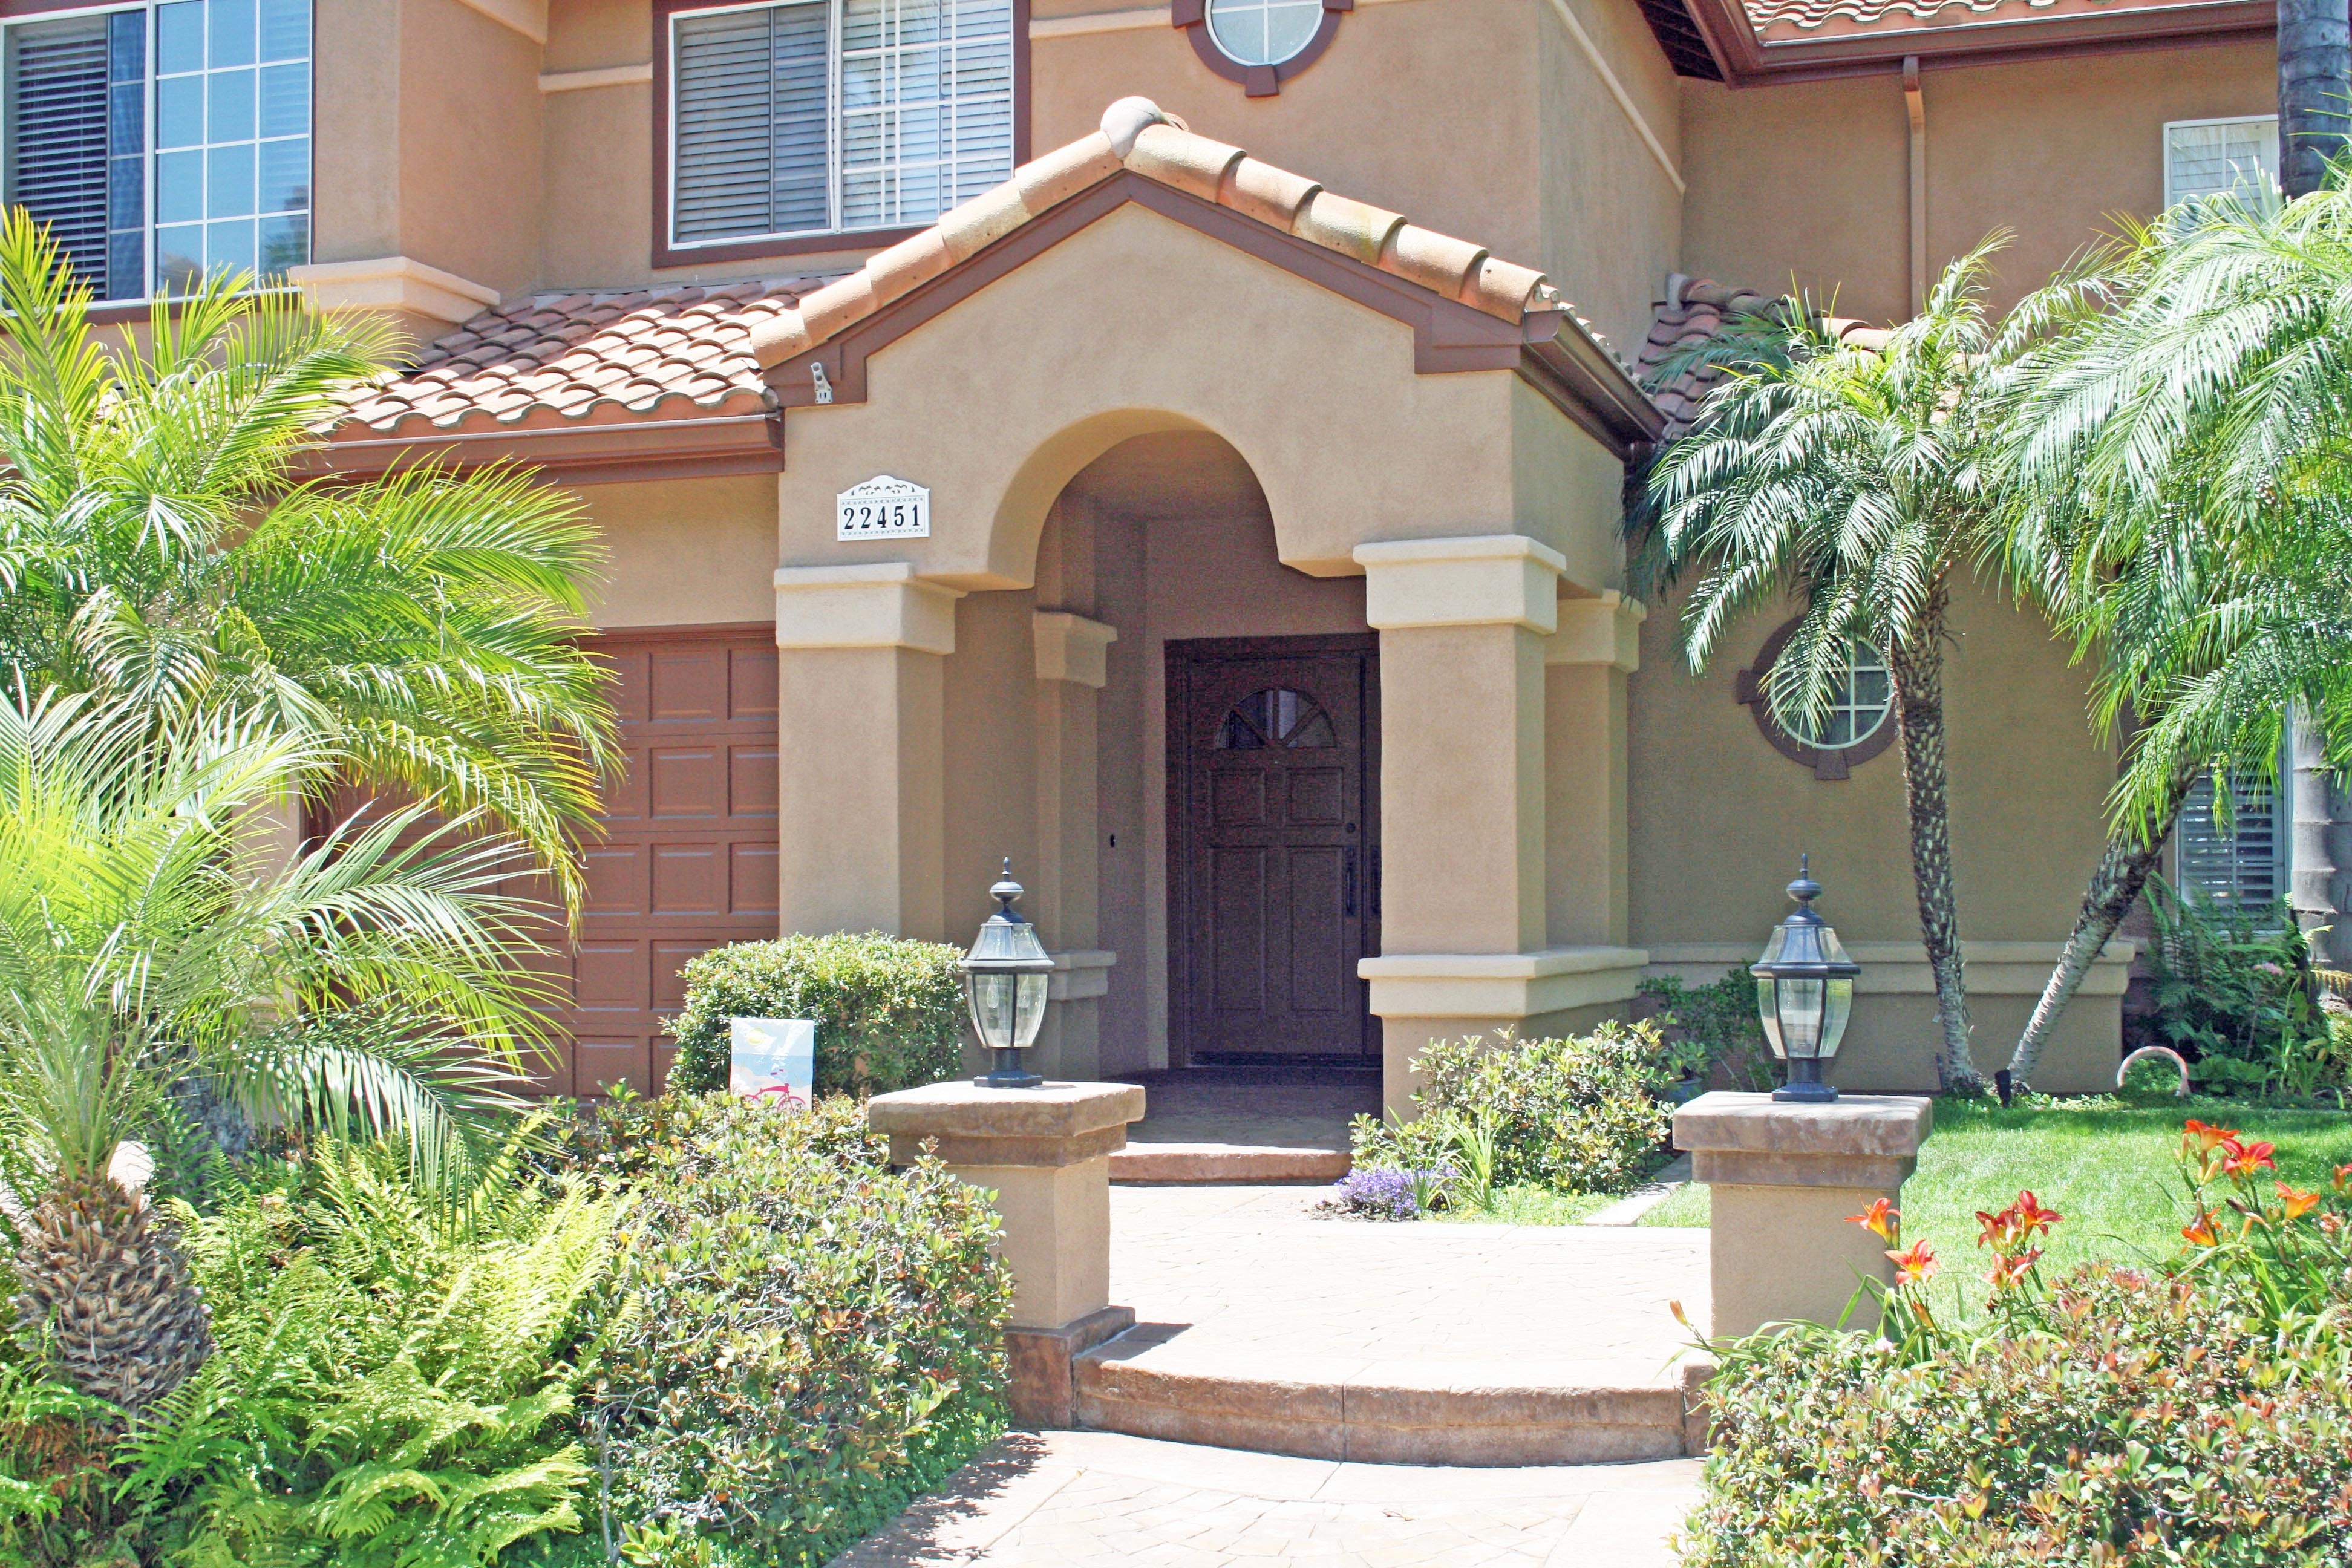 Home For Sale in Mission Viejo